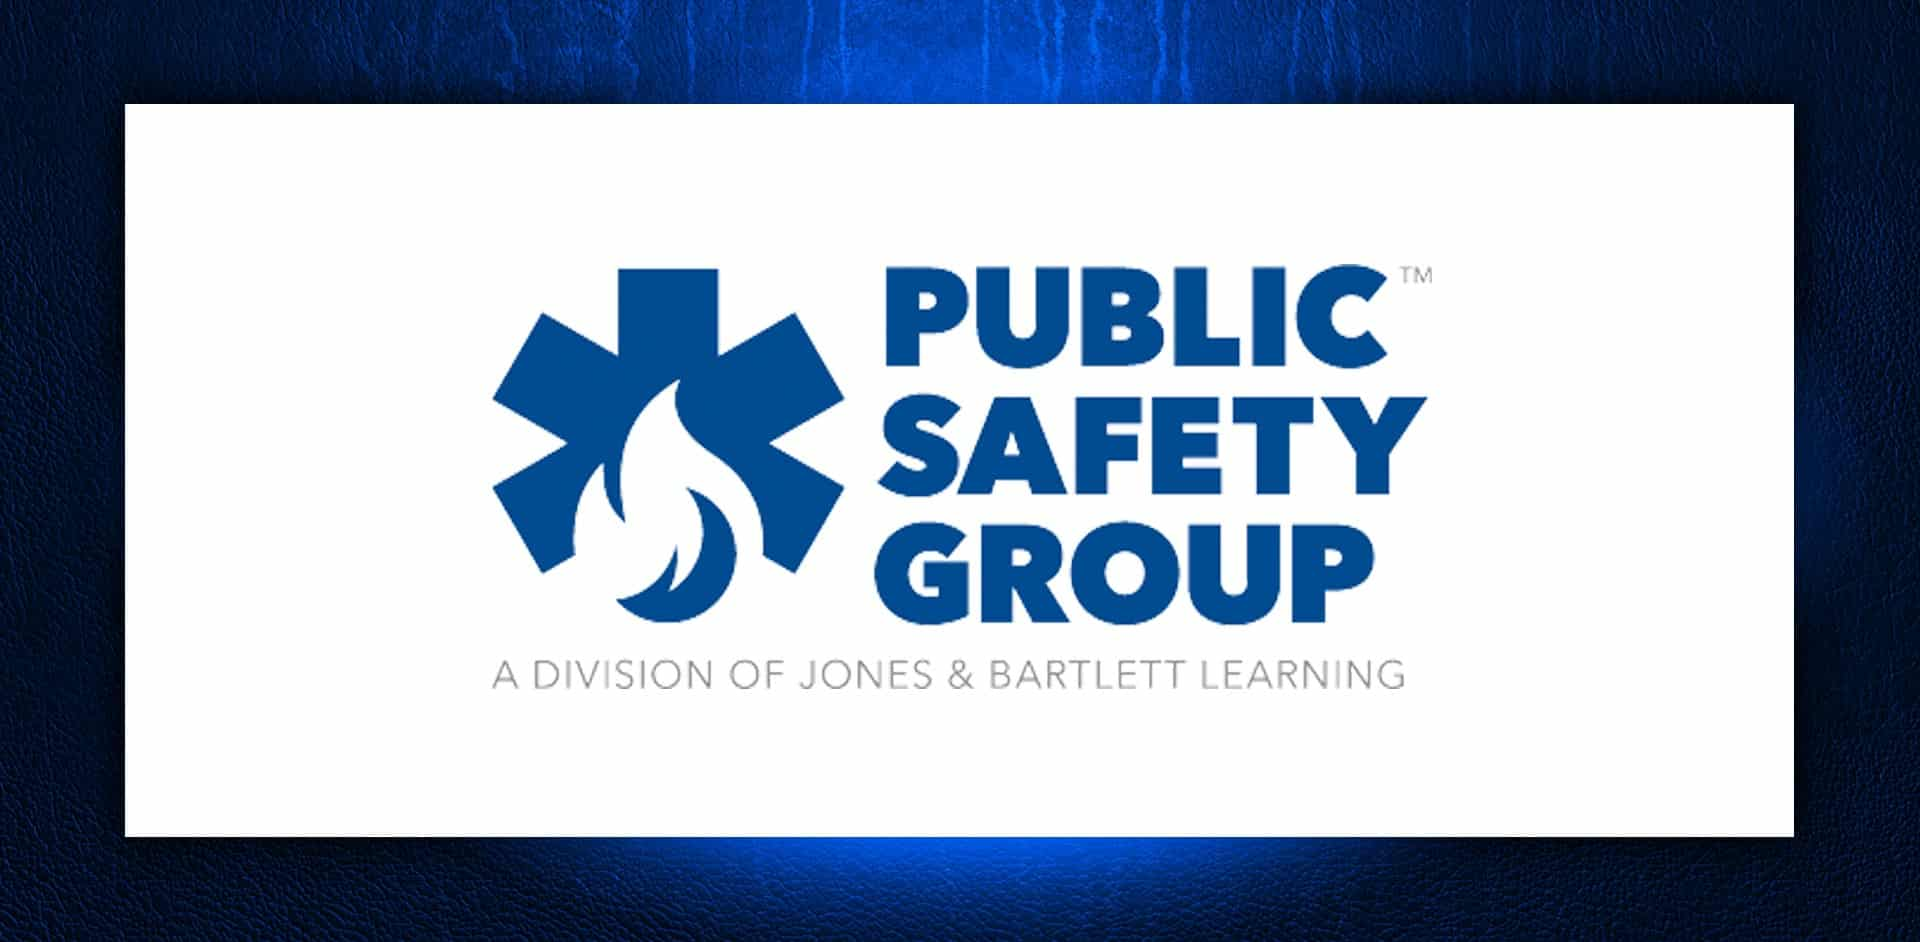 Jones & Bartlett Learning Public Safety Group